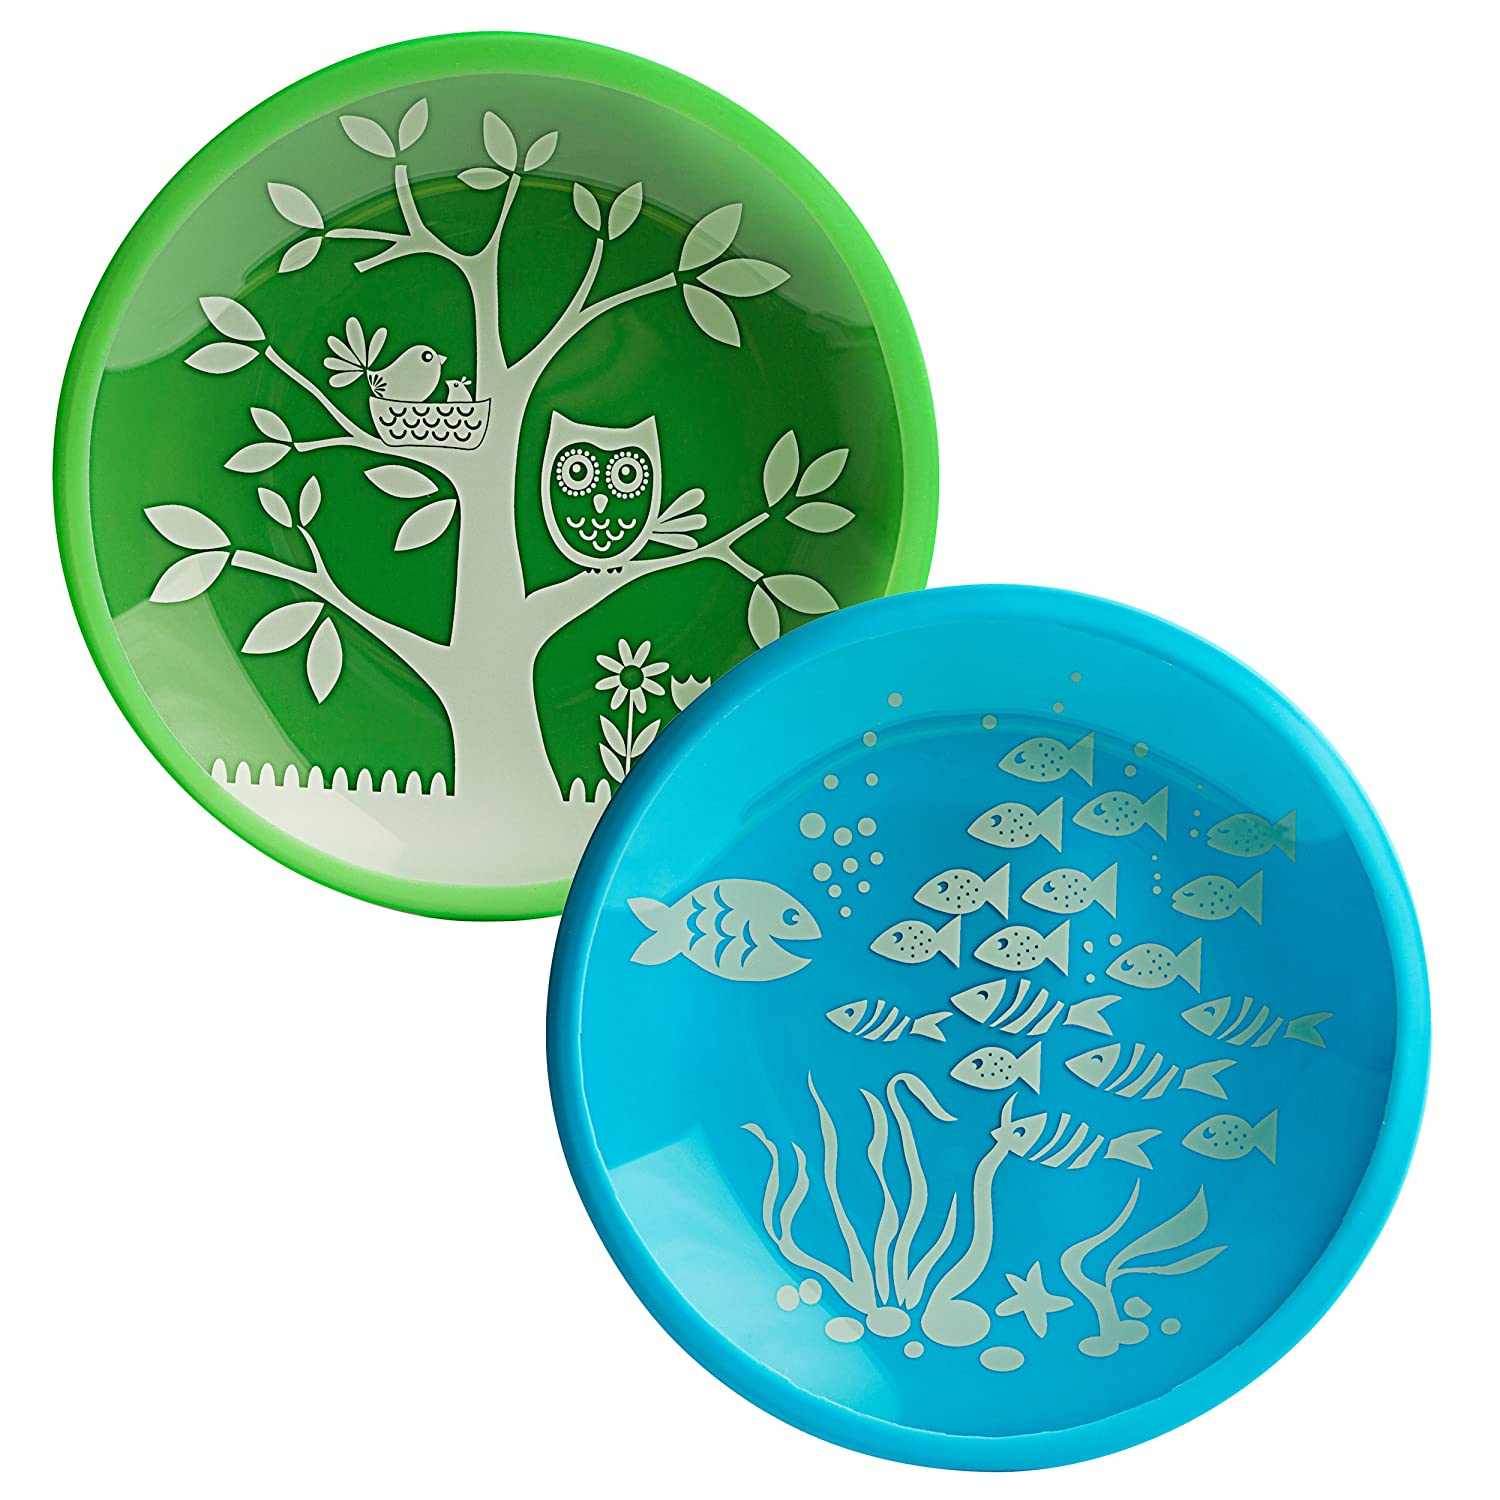 Brinware it's a hoot Dish Set, School of Fish BRIM2PKBG